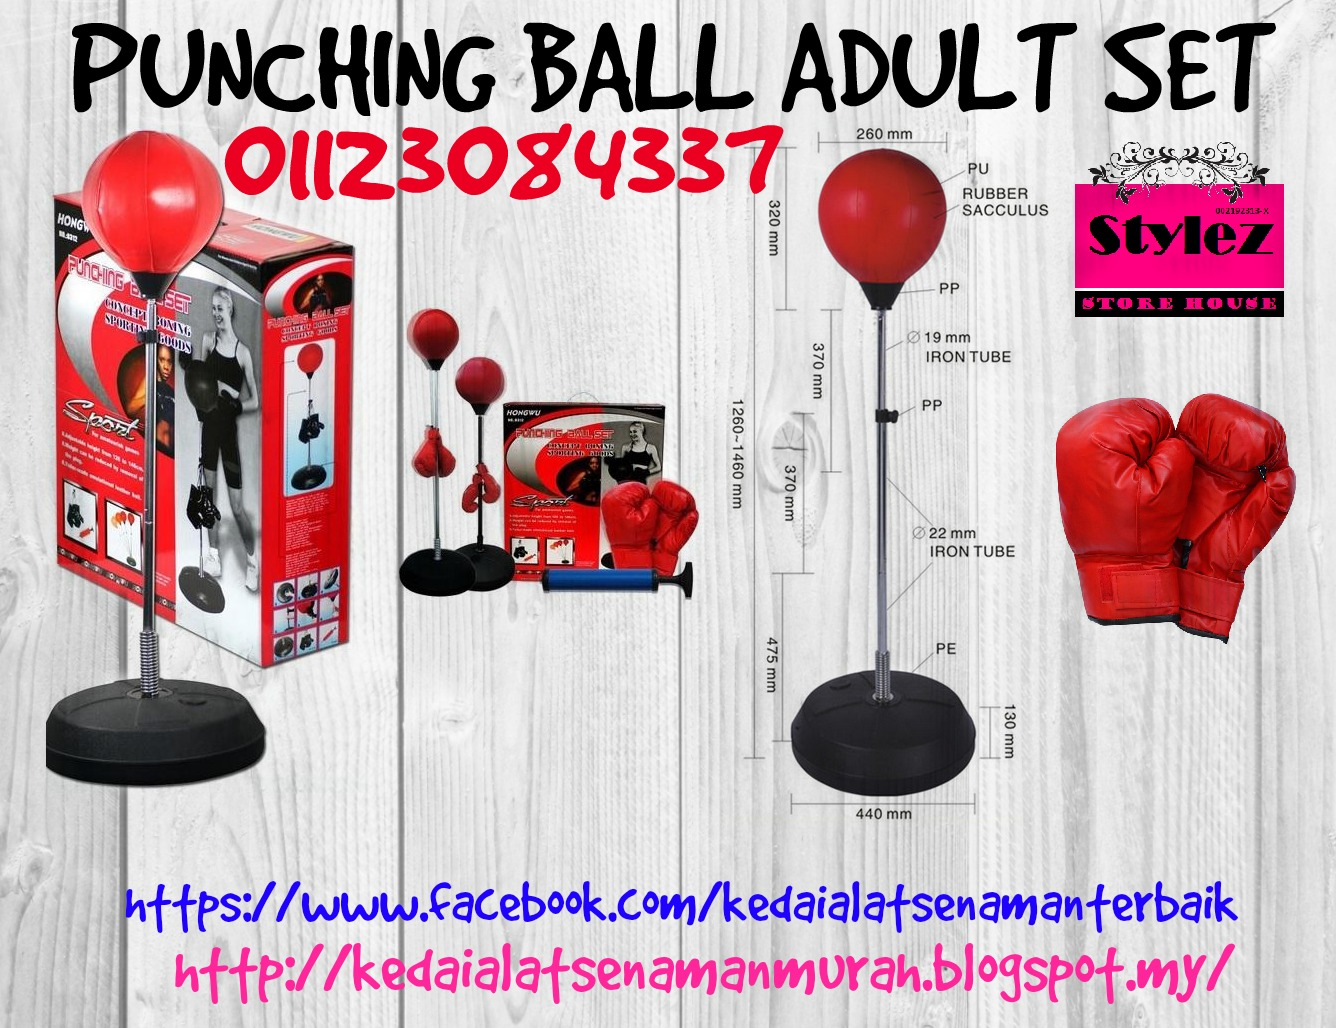 PUNCHING BALL ADULT SET